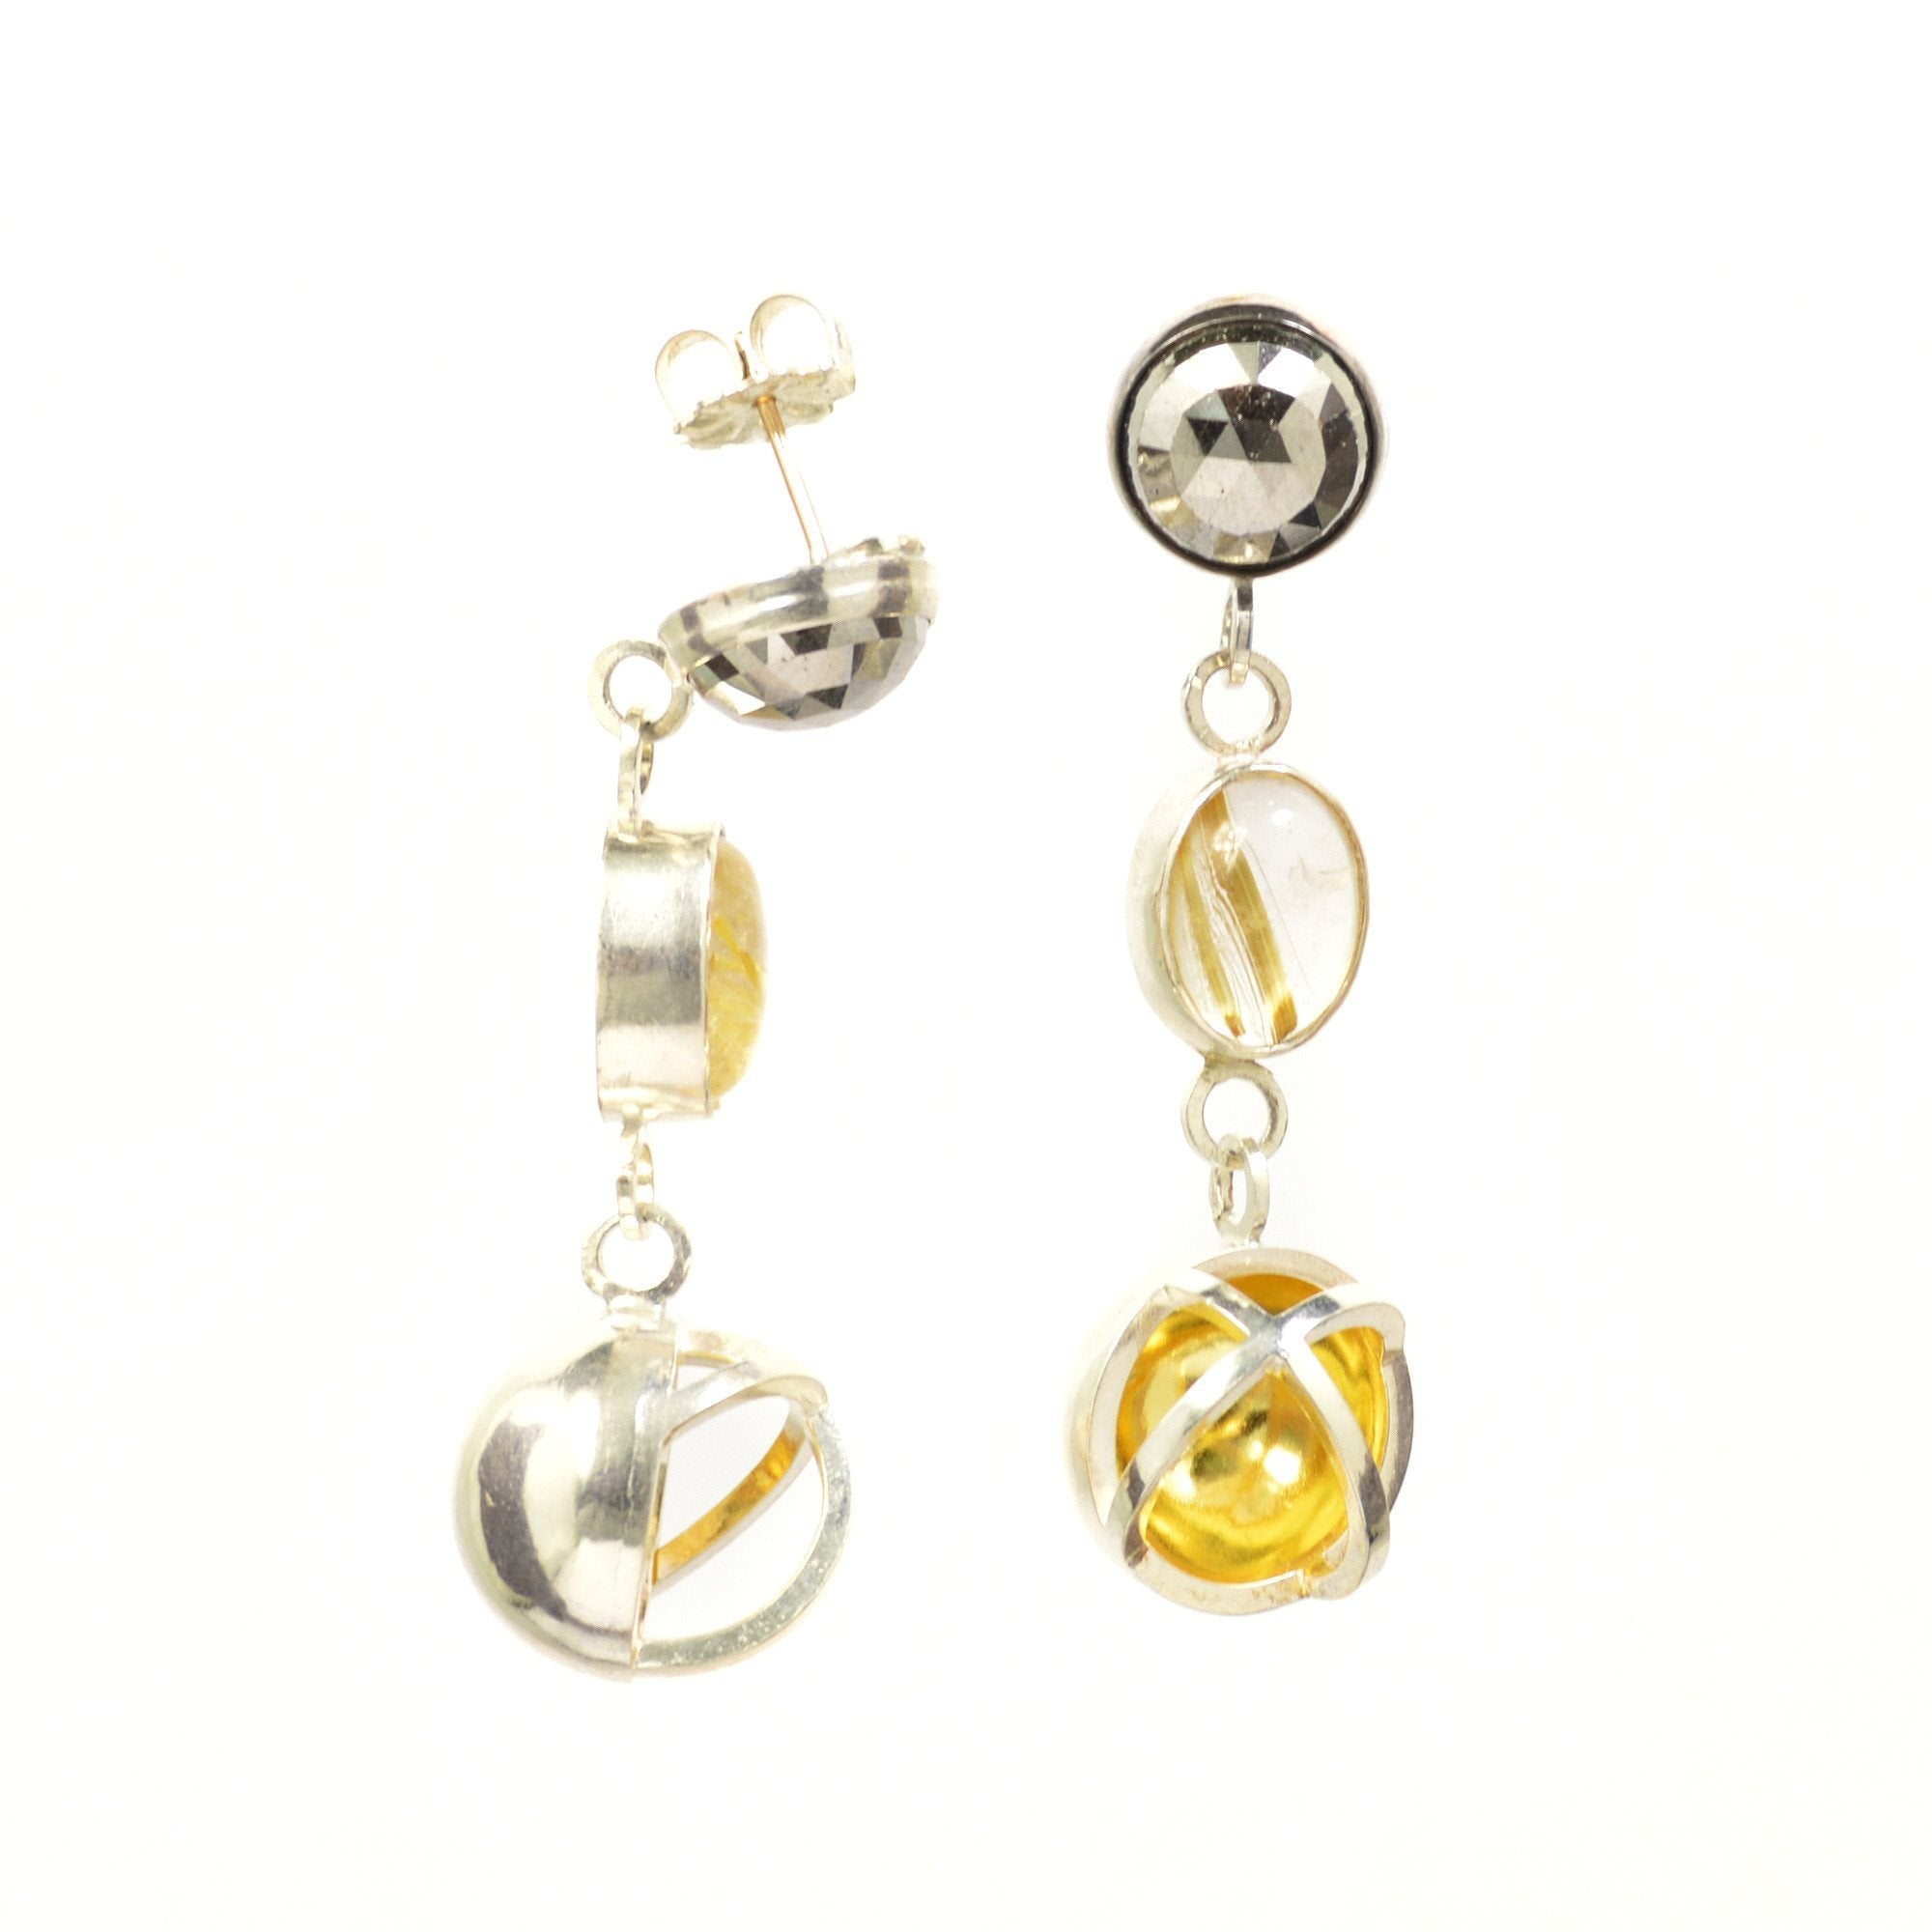 Earth Ocean Air Earrings in Sterling Silver, 22K Gold, Hematites and Rutile Quartz